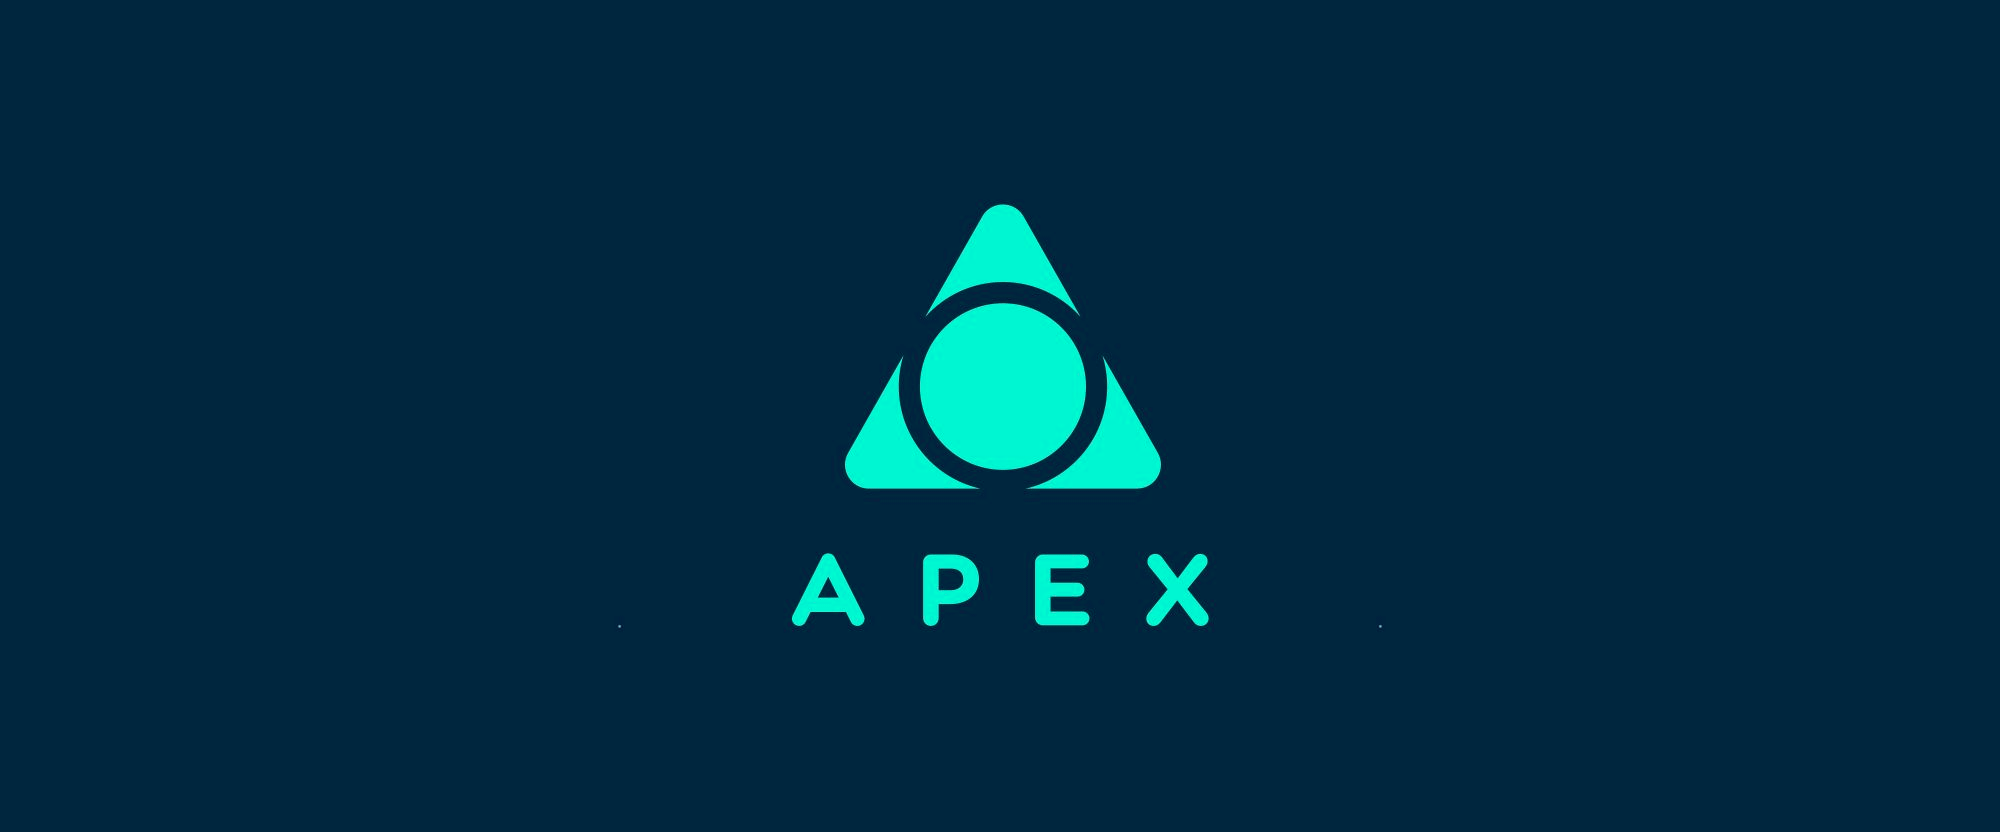 New Logo and Identity for Apex by Underexposed